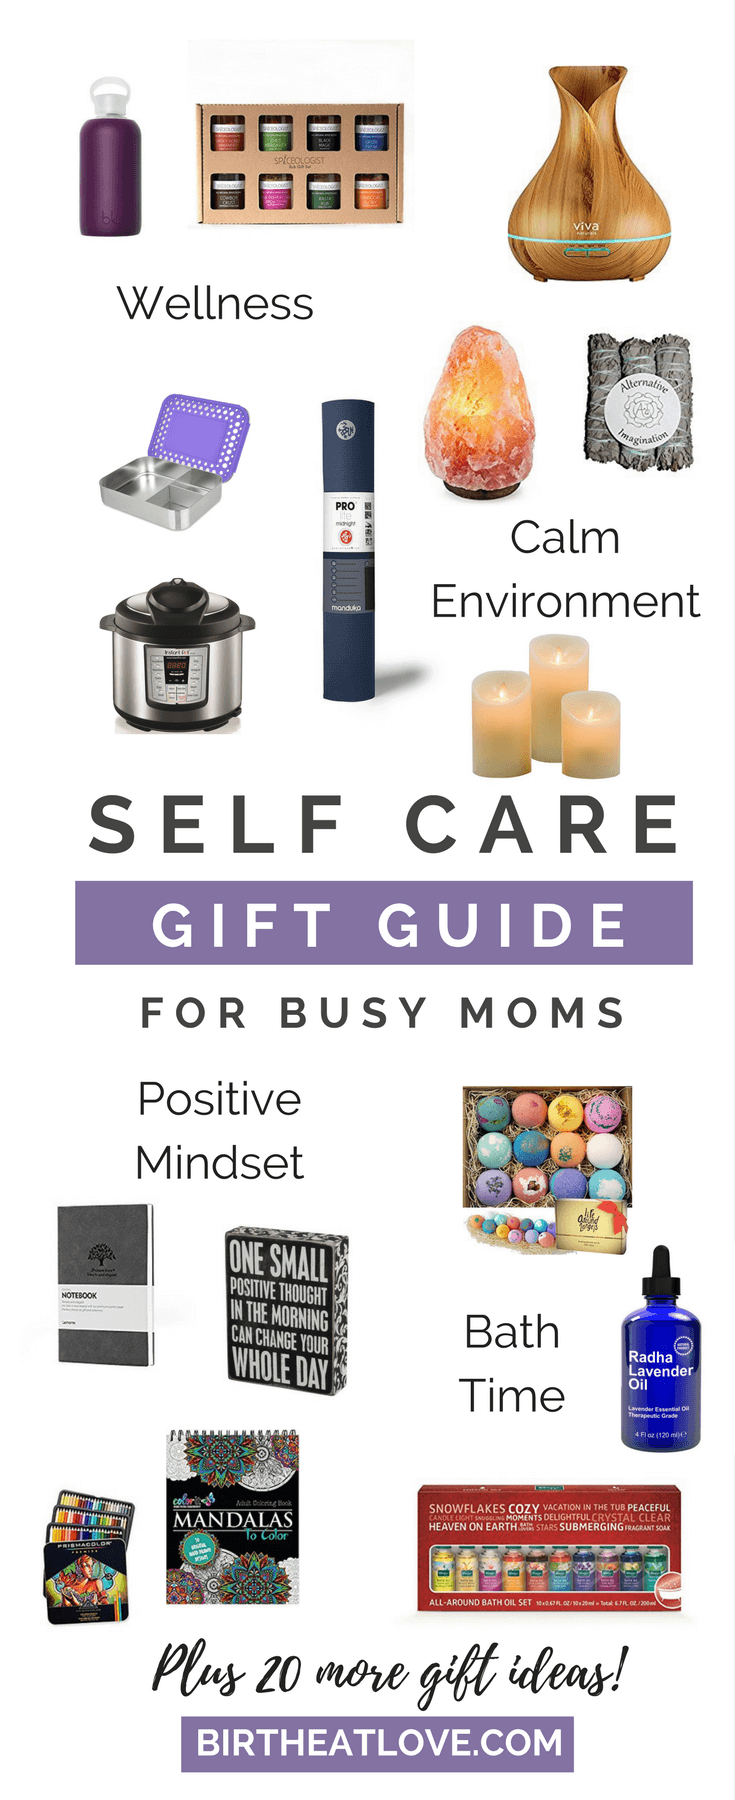 Gift ideas for busy moms. Treat yourself to some self care. Self care ideas under $20. #selfcare #momlife